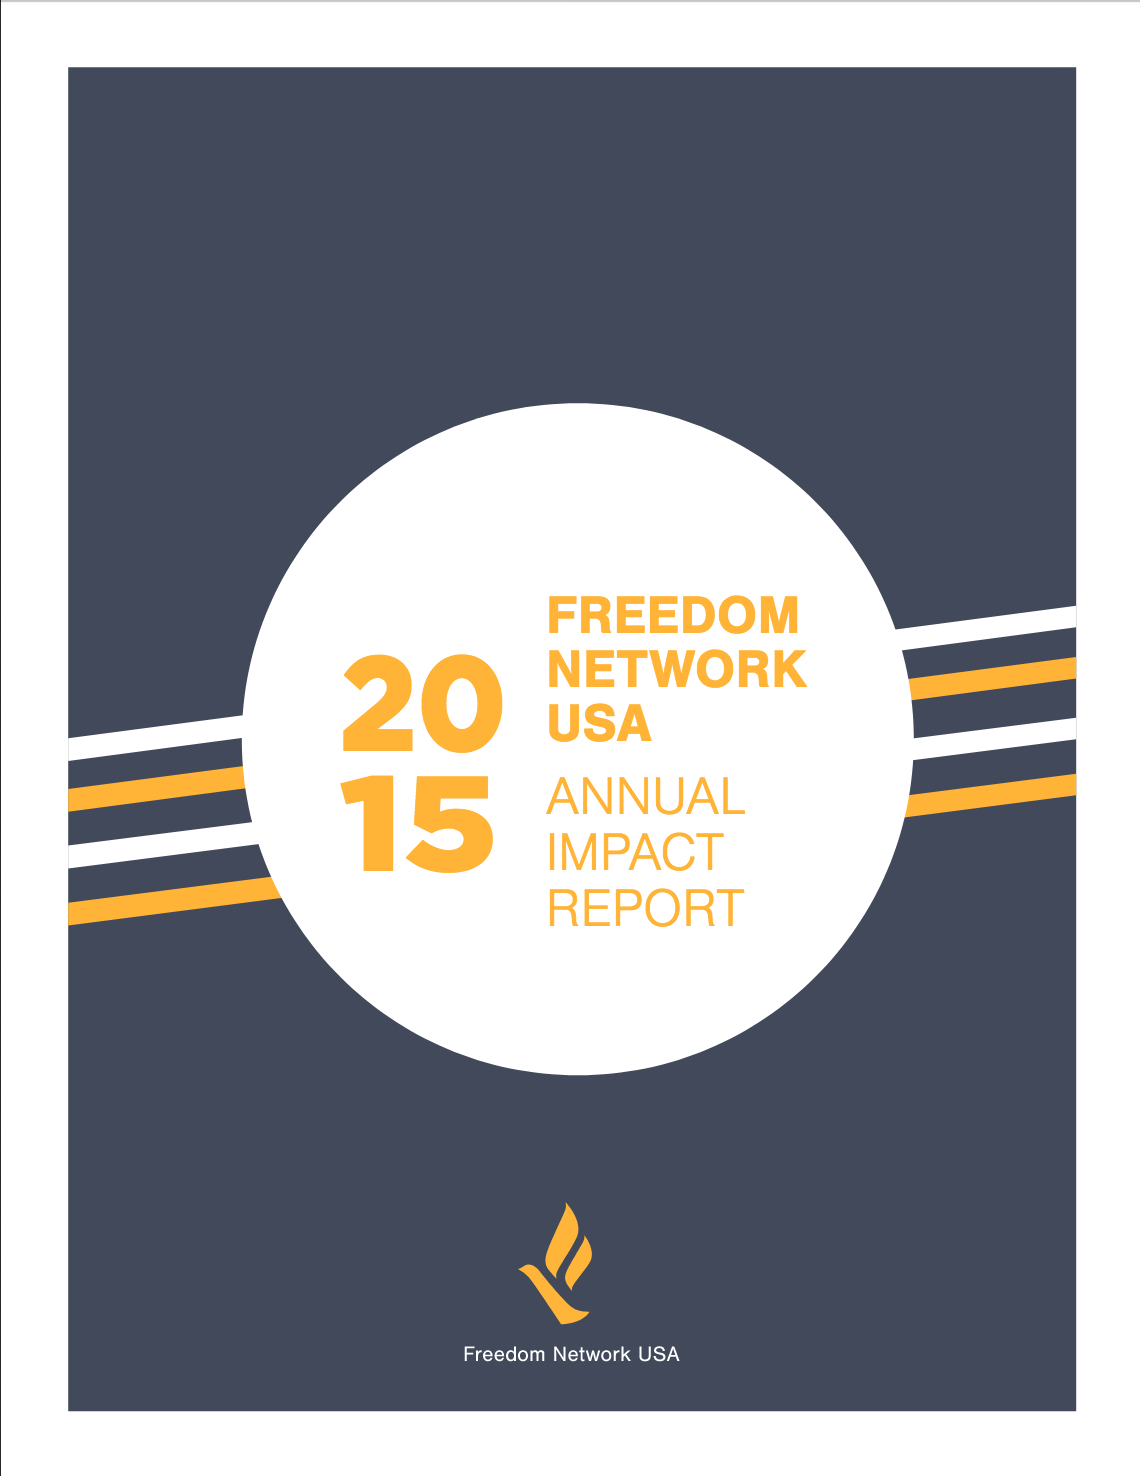 impact report freedom network usa